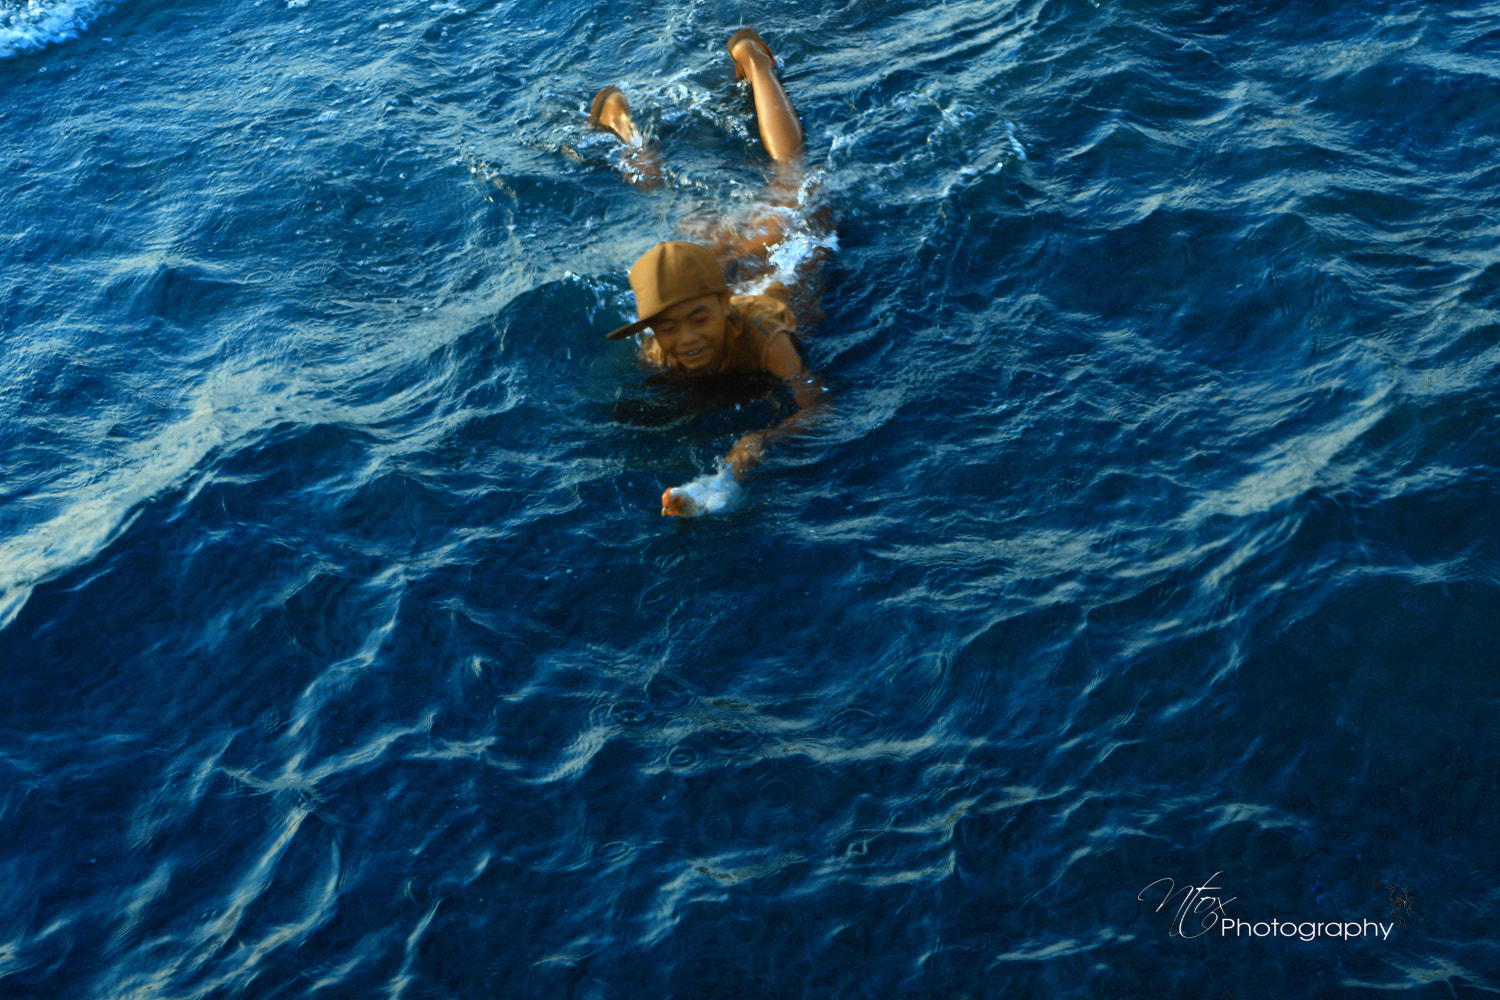 Photograph swimming with chicken by ntox ntoxdejavu on 500px